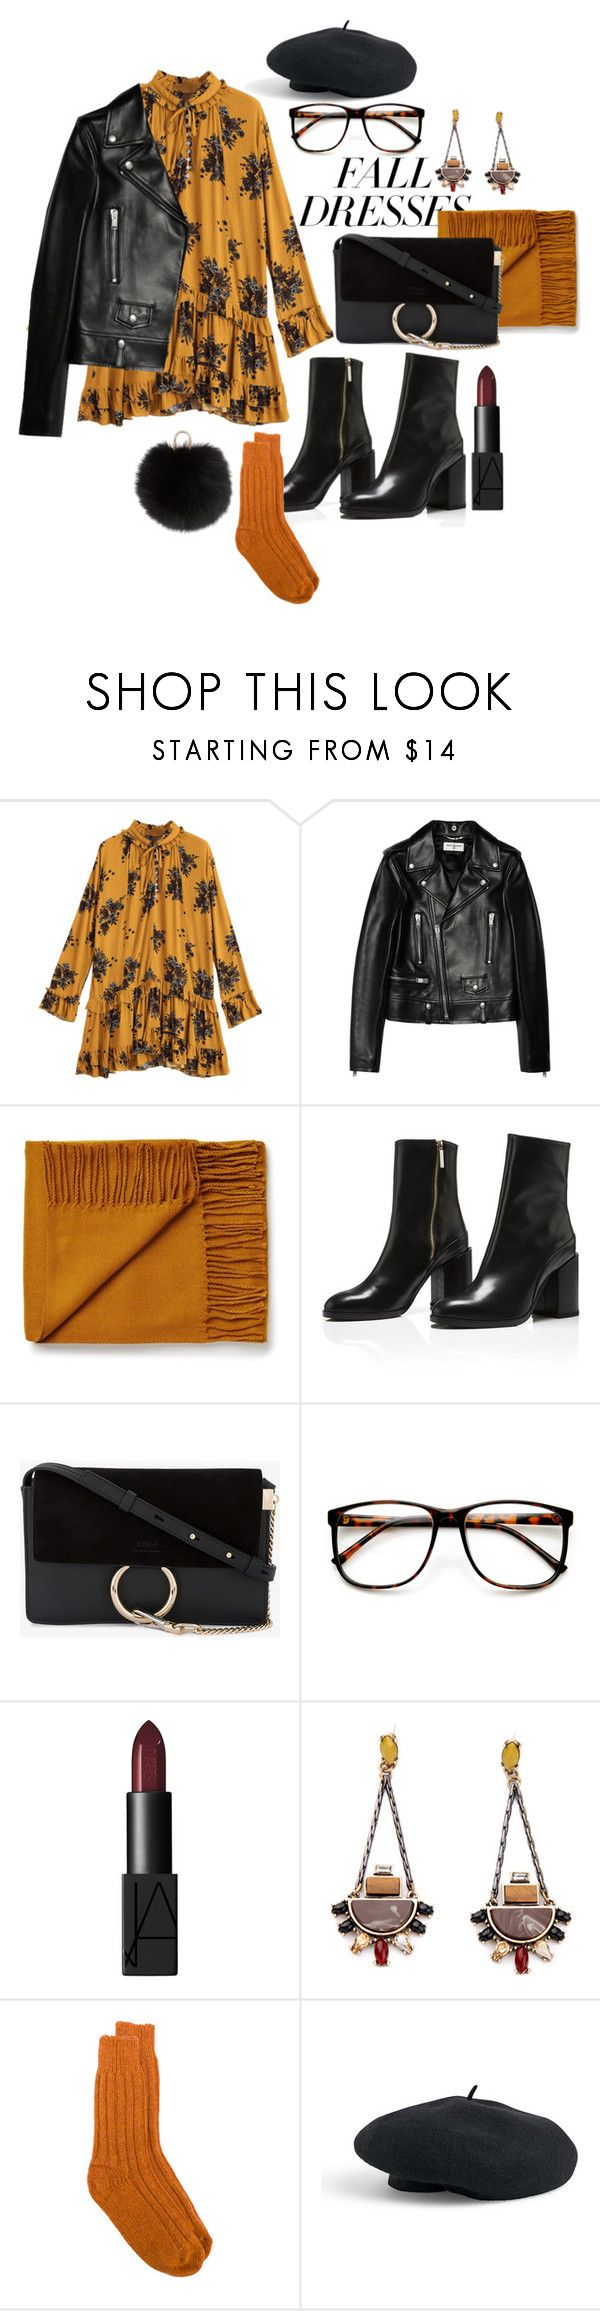 """fall"" by nover on Polyvore featuring Yves Saint Laurent, Chloé, ZeroUV, NARS Cosmetics, alyki, Venus and Yves Salomon"